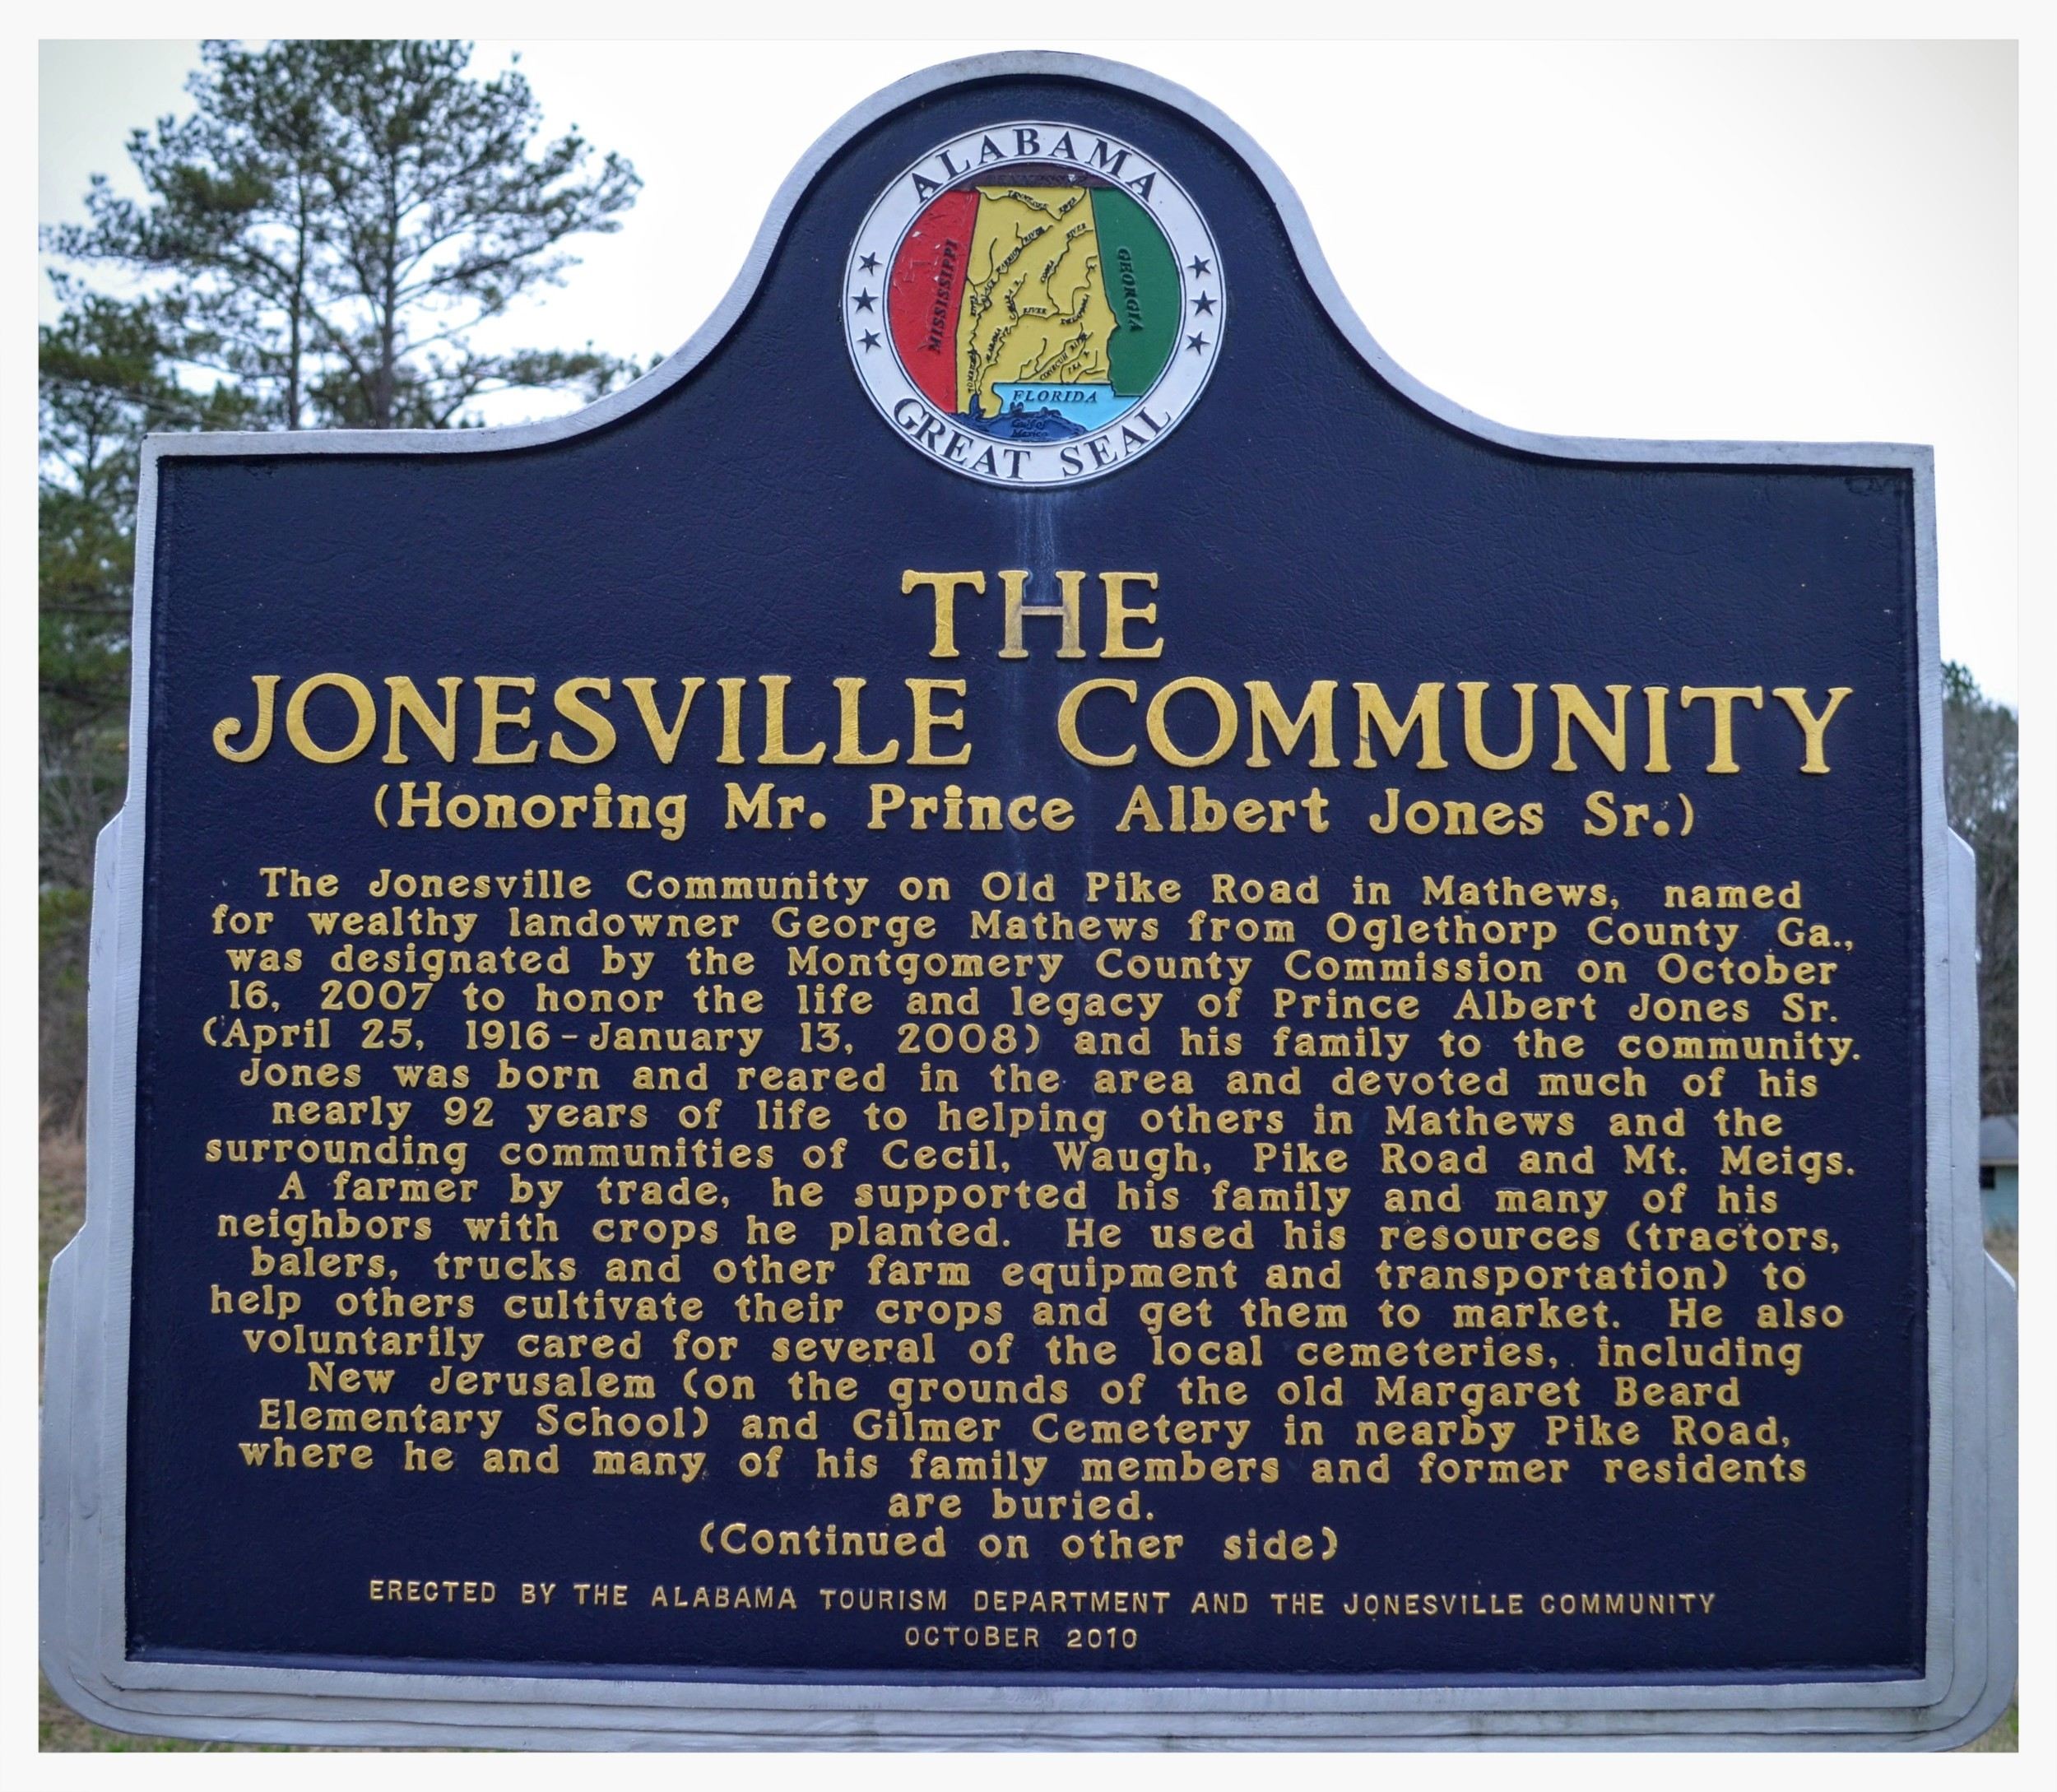 Jonesville Community historical marker, side one, Mathews, Montgomery County, Alabama